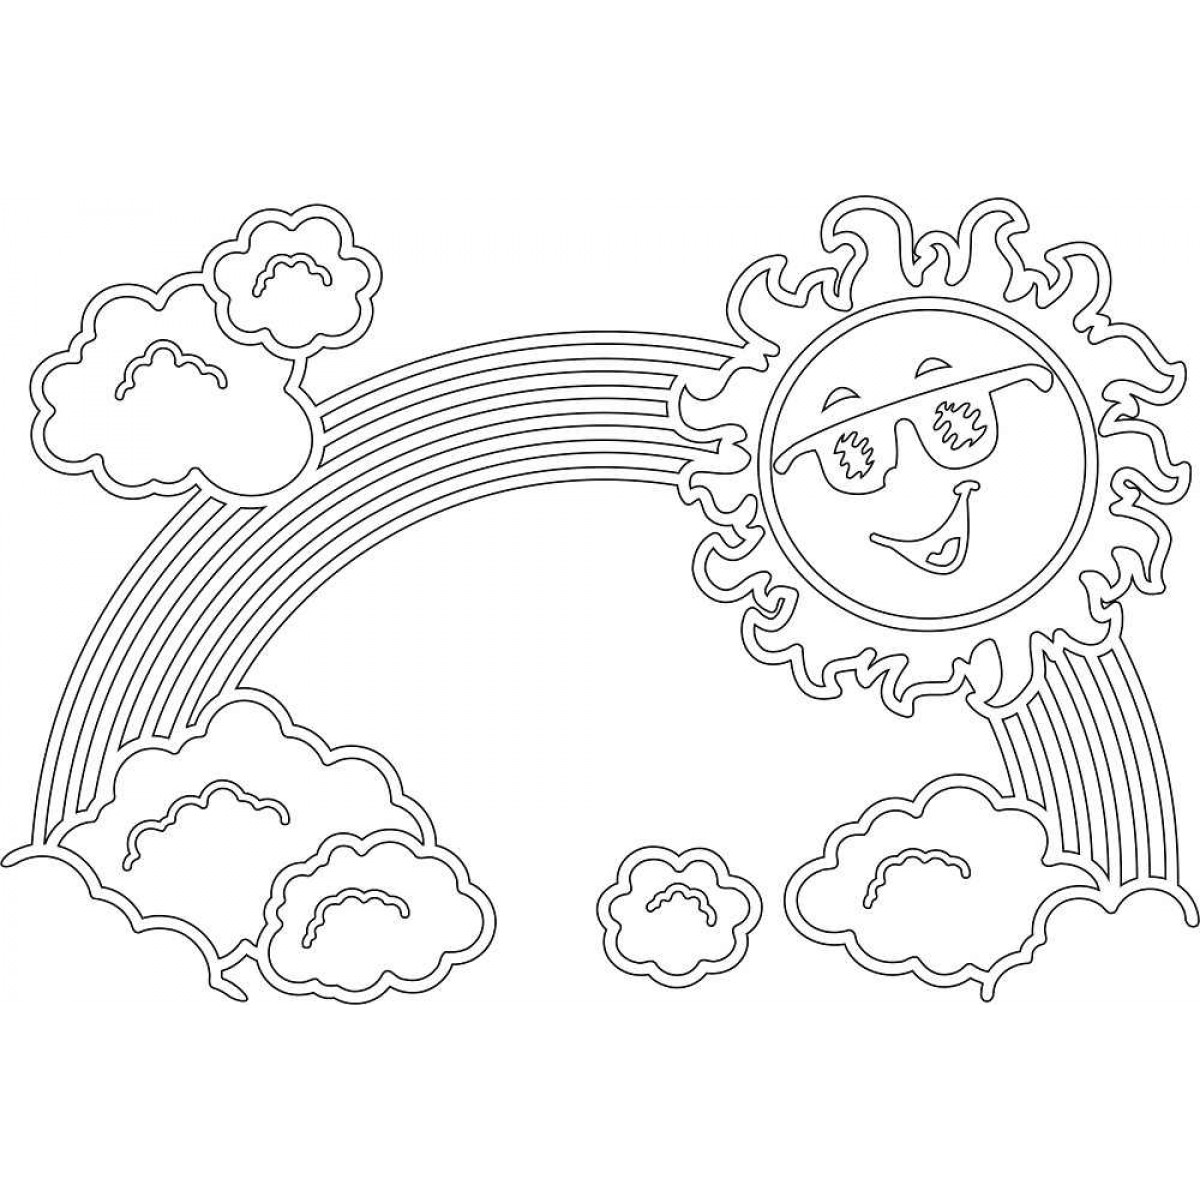 Rainbow Coloring Pages for childrens